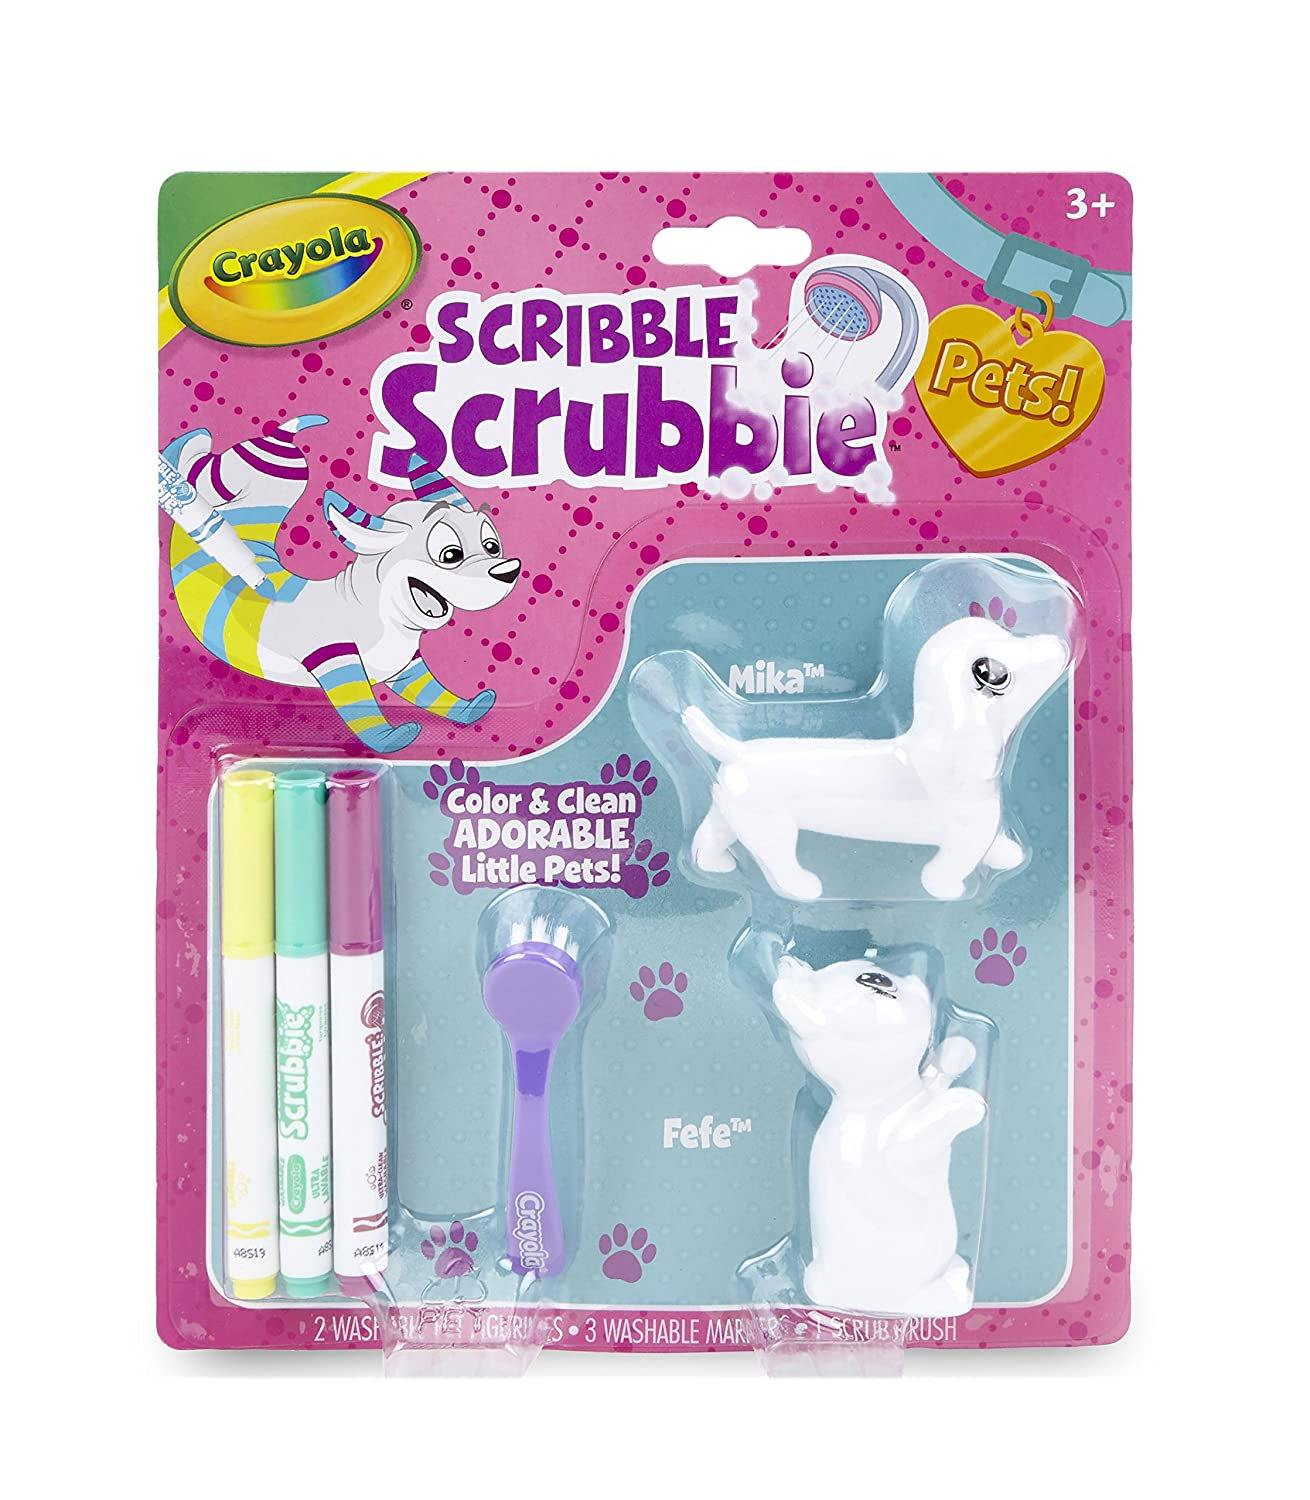 Crayola Scribble Scrubbie, Color & Wash Pet Toys for Kids, Gift, Ages 3, 4, 5, 6 Binney & Smith 74-7254